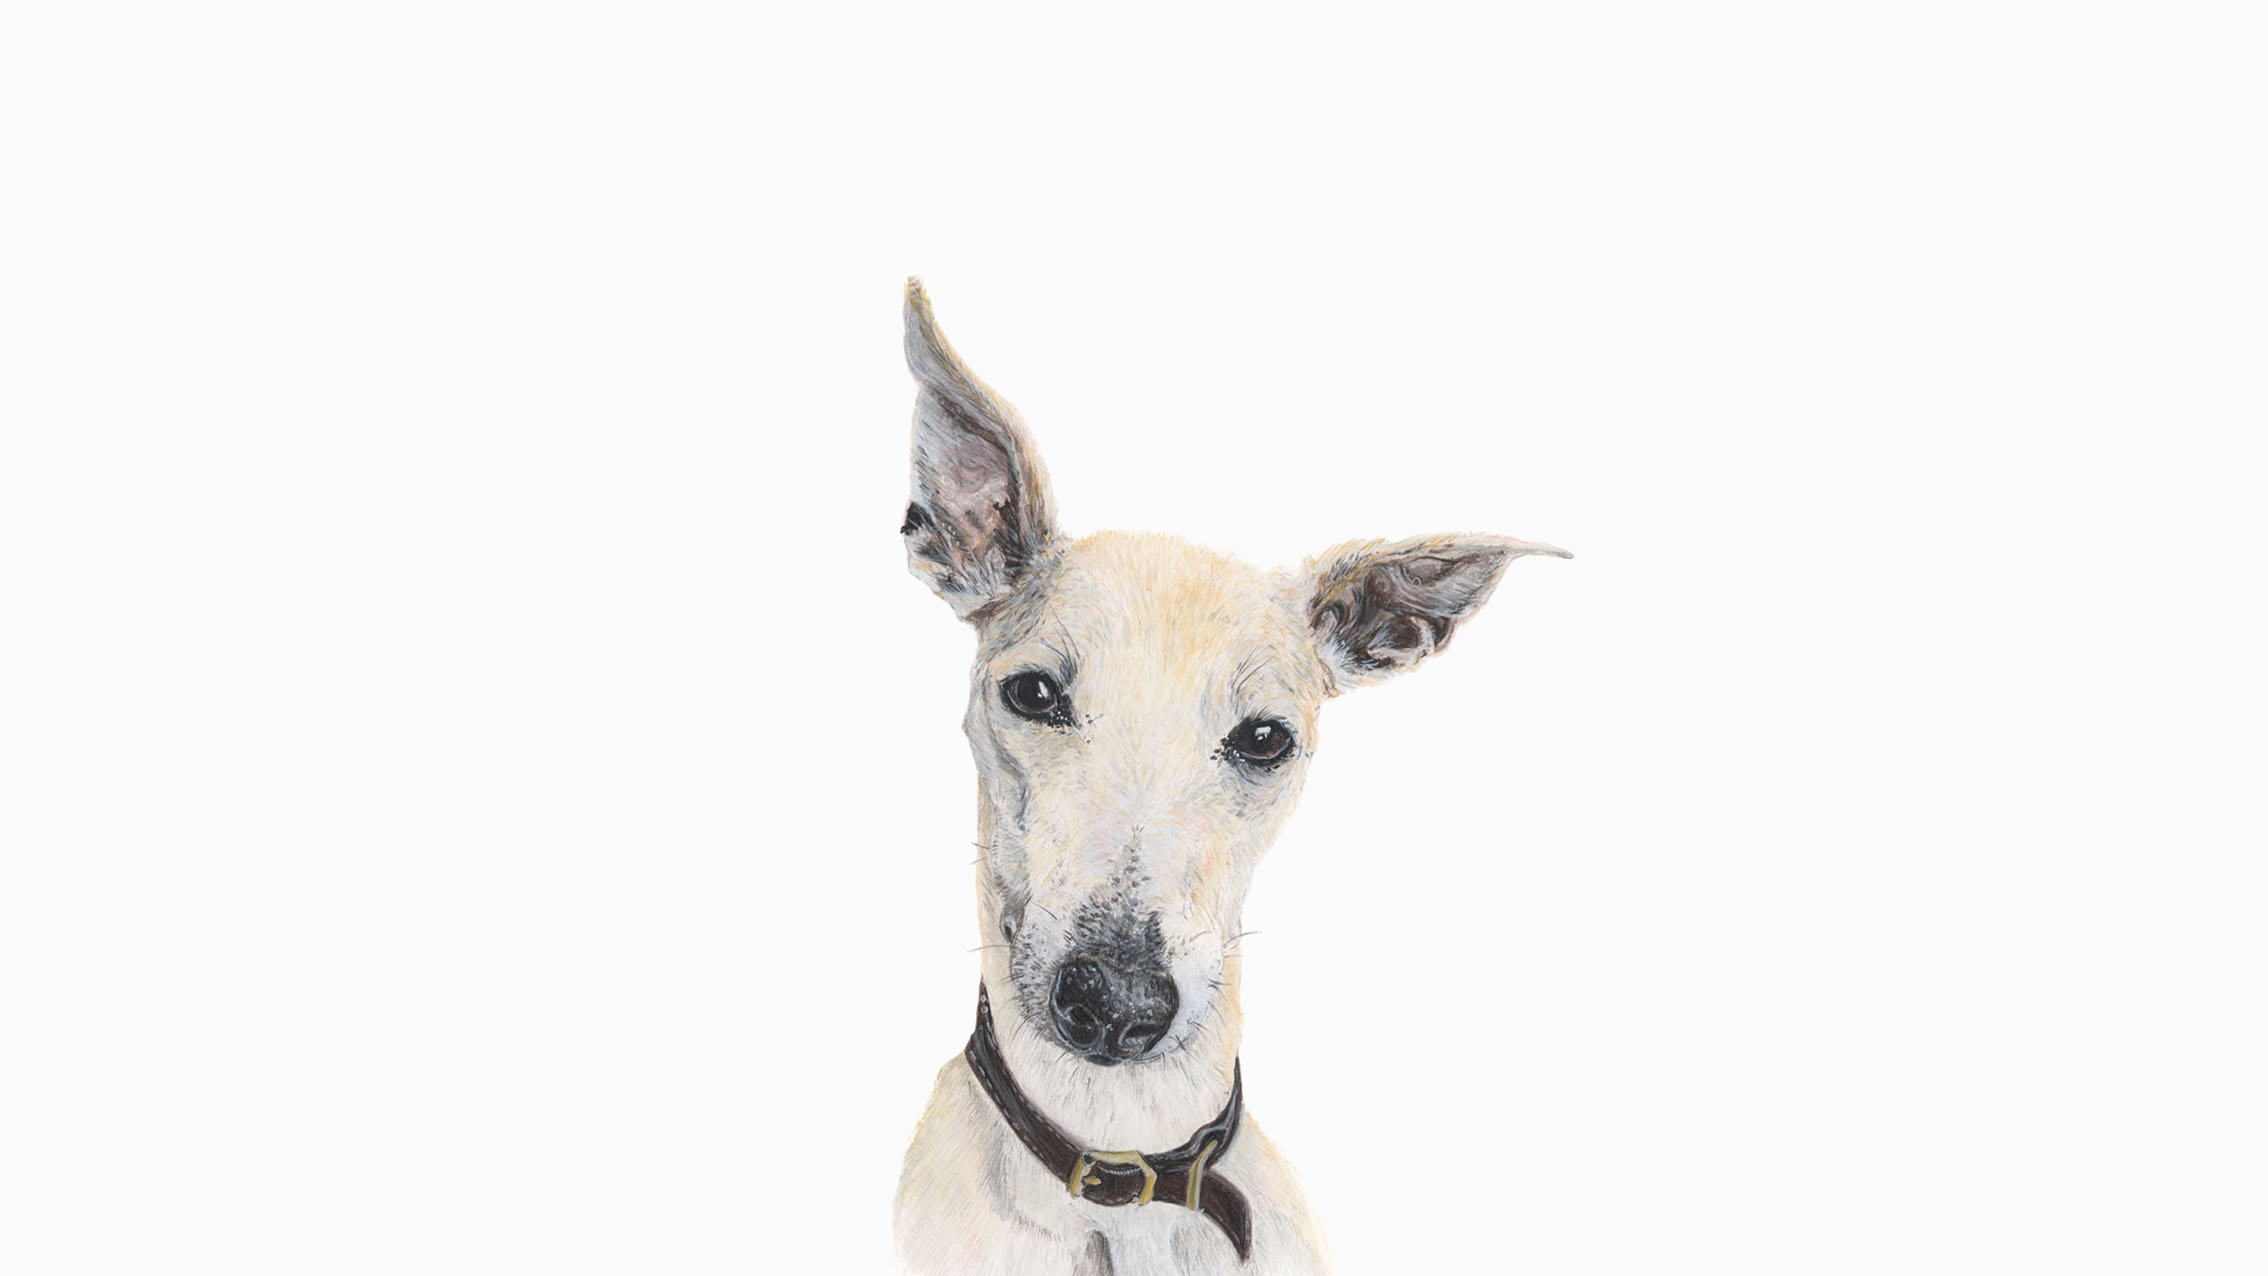 Clarence, the Whippet